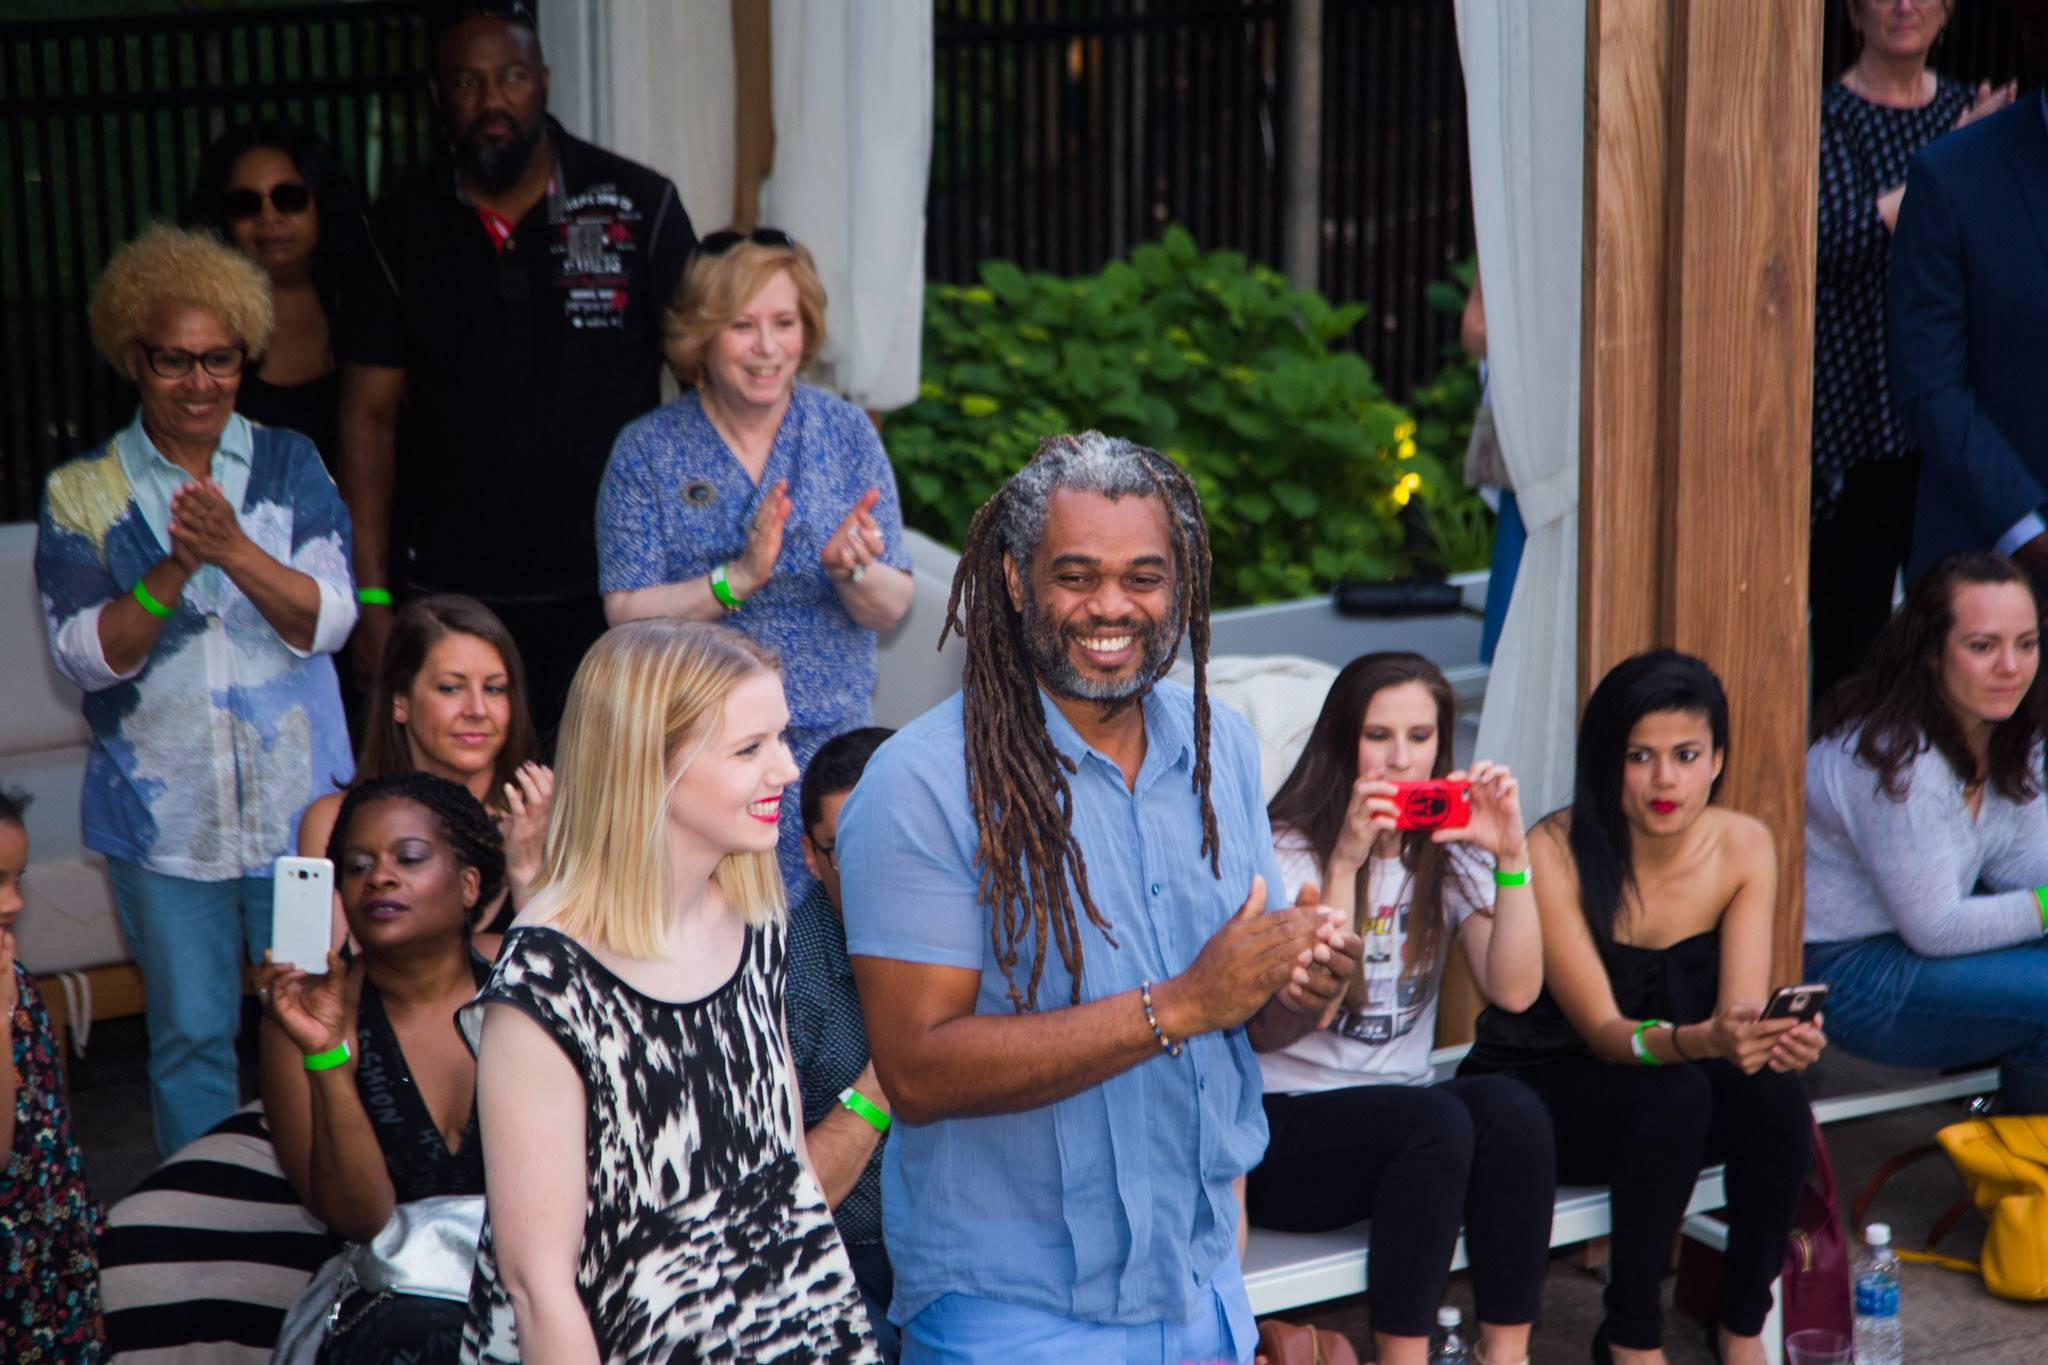 Neville Wisdom Fall Fashion Show In New Haven S Ninth Square New Haven Register